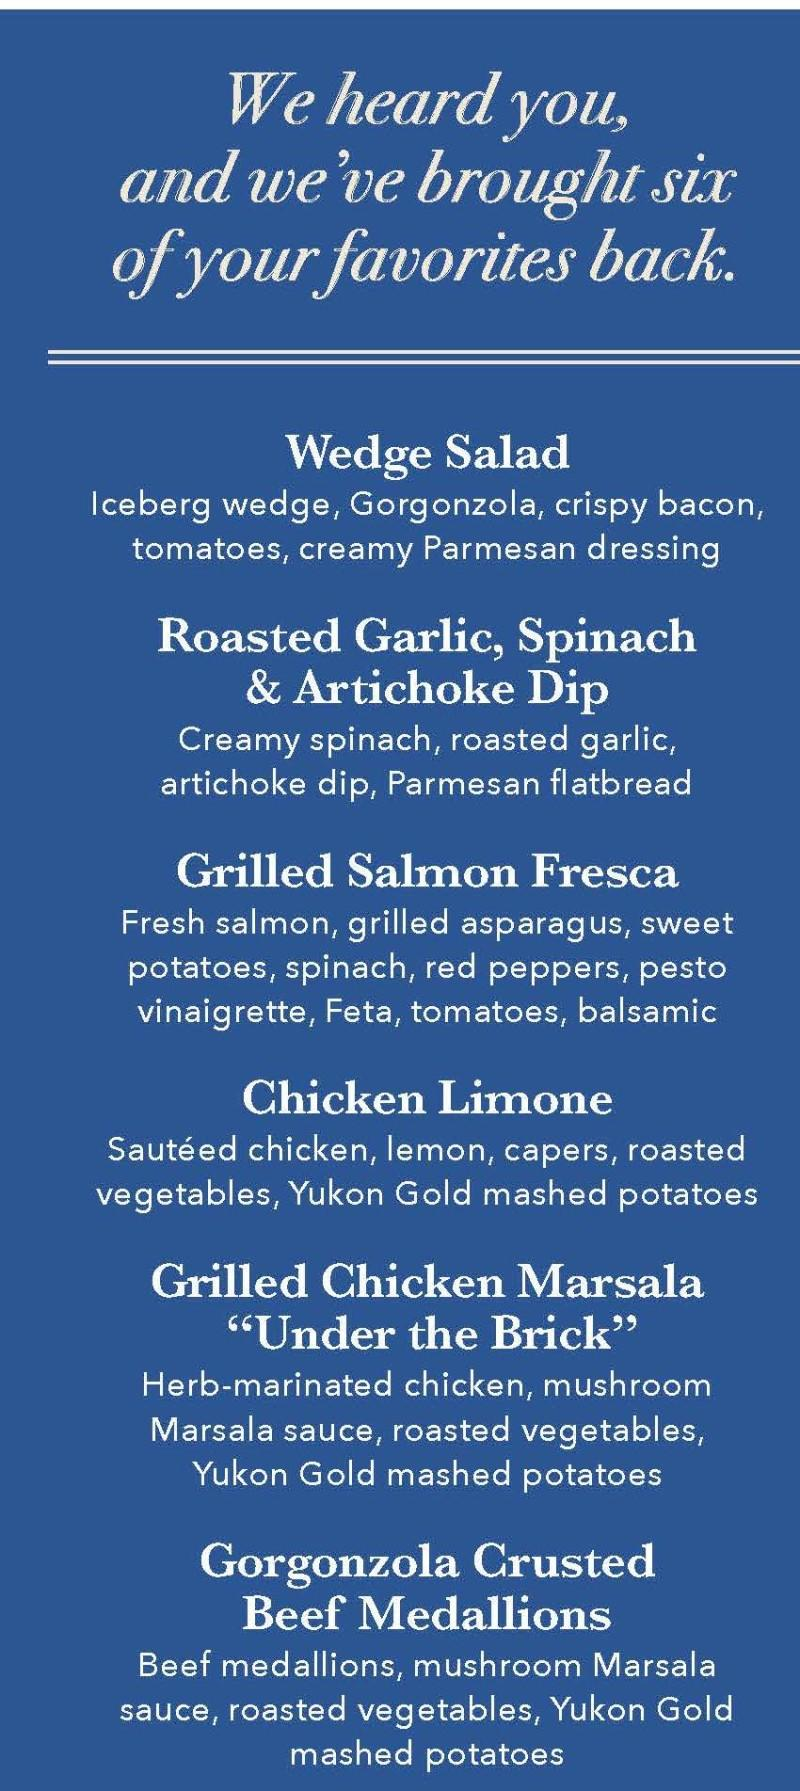 Guest Favorites are back at Brio!